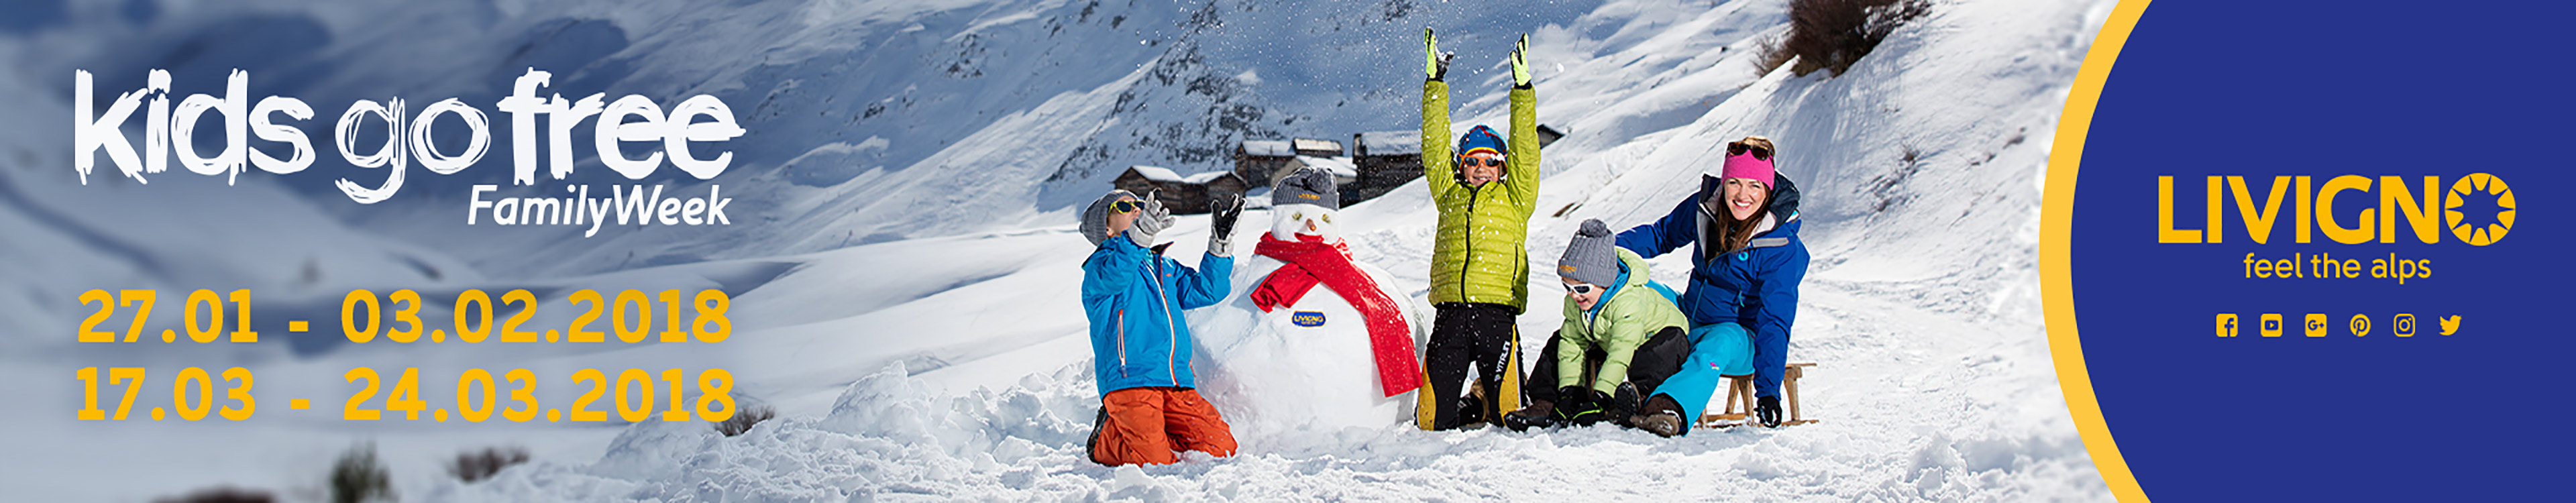 Kids go free! Family week. Livigno - Feel the alps!